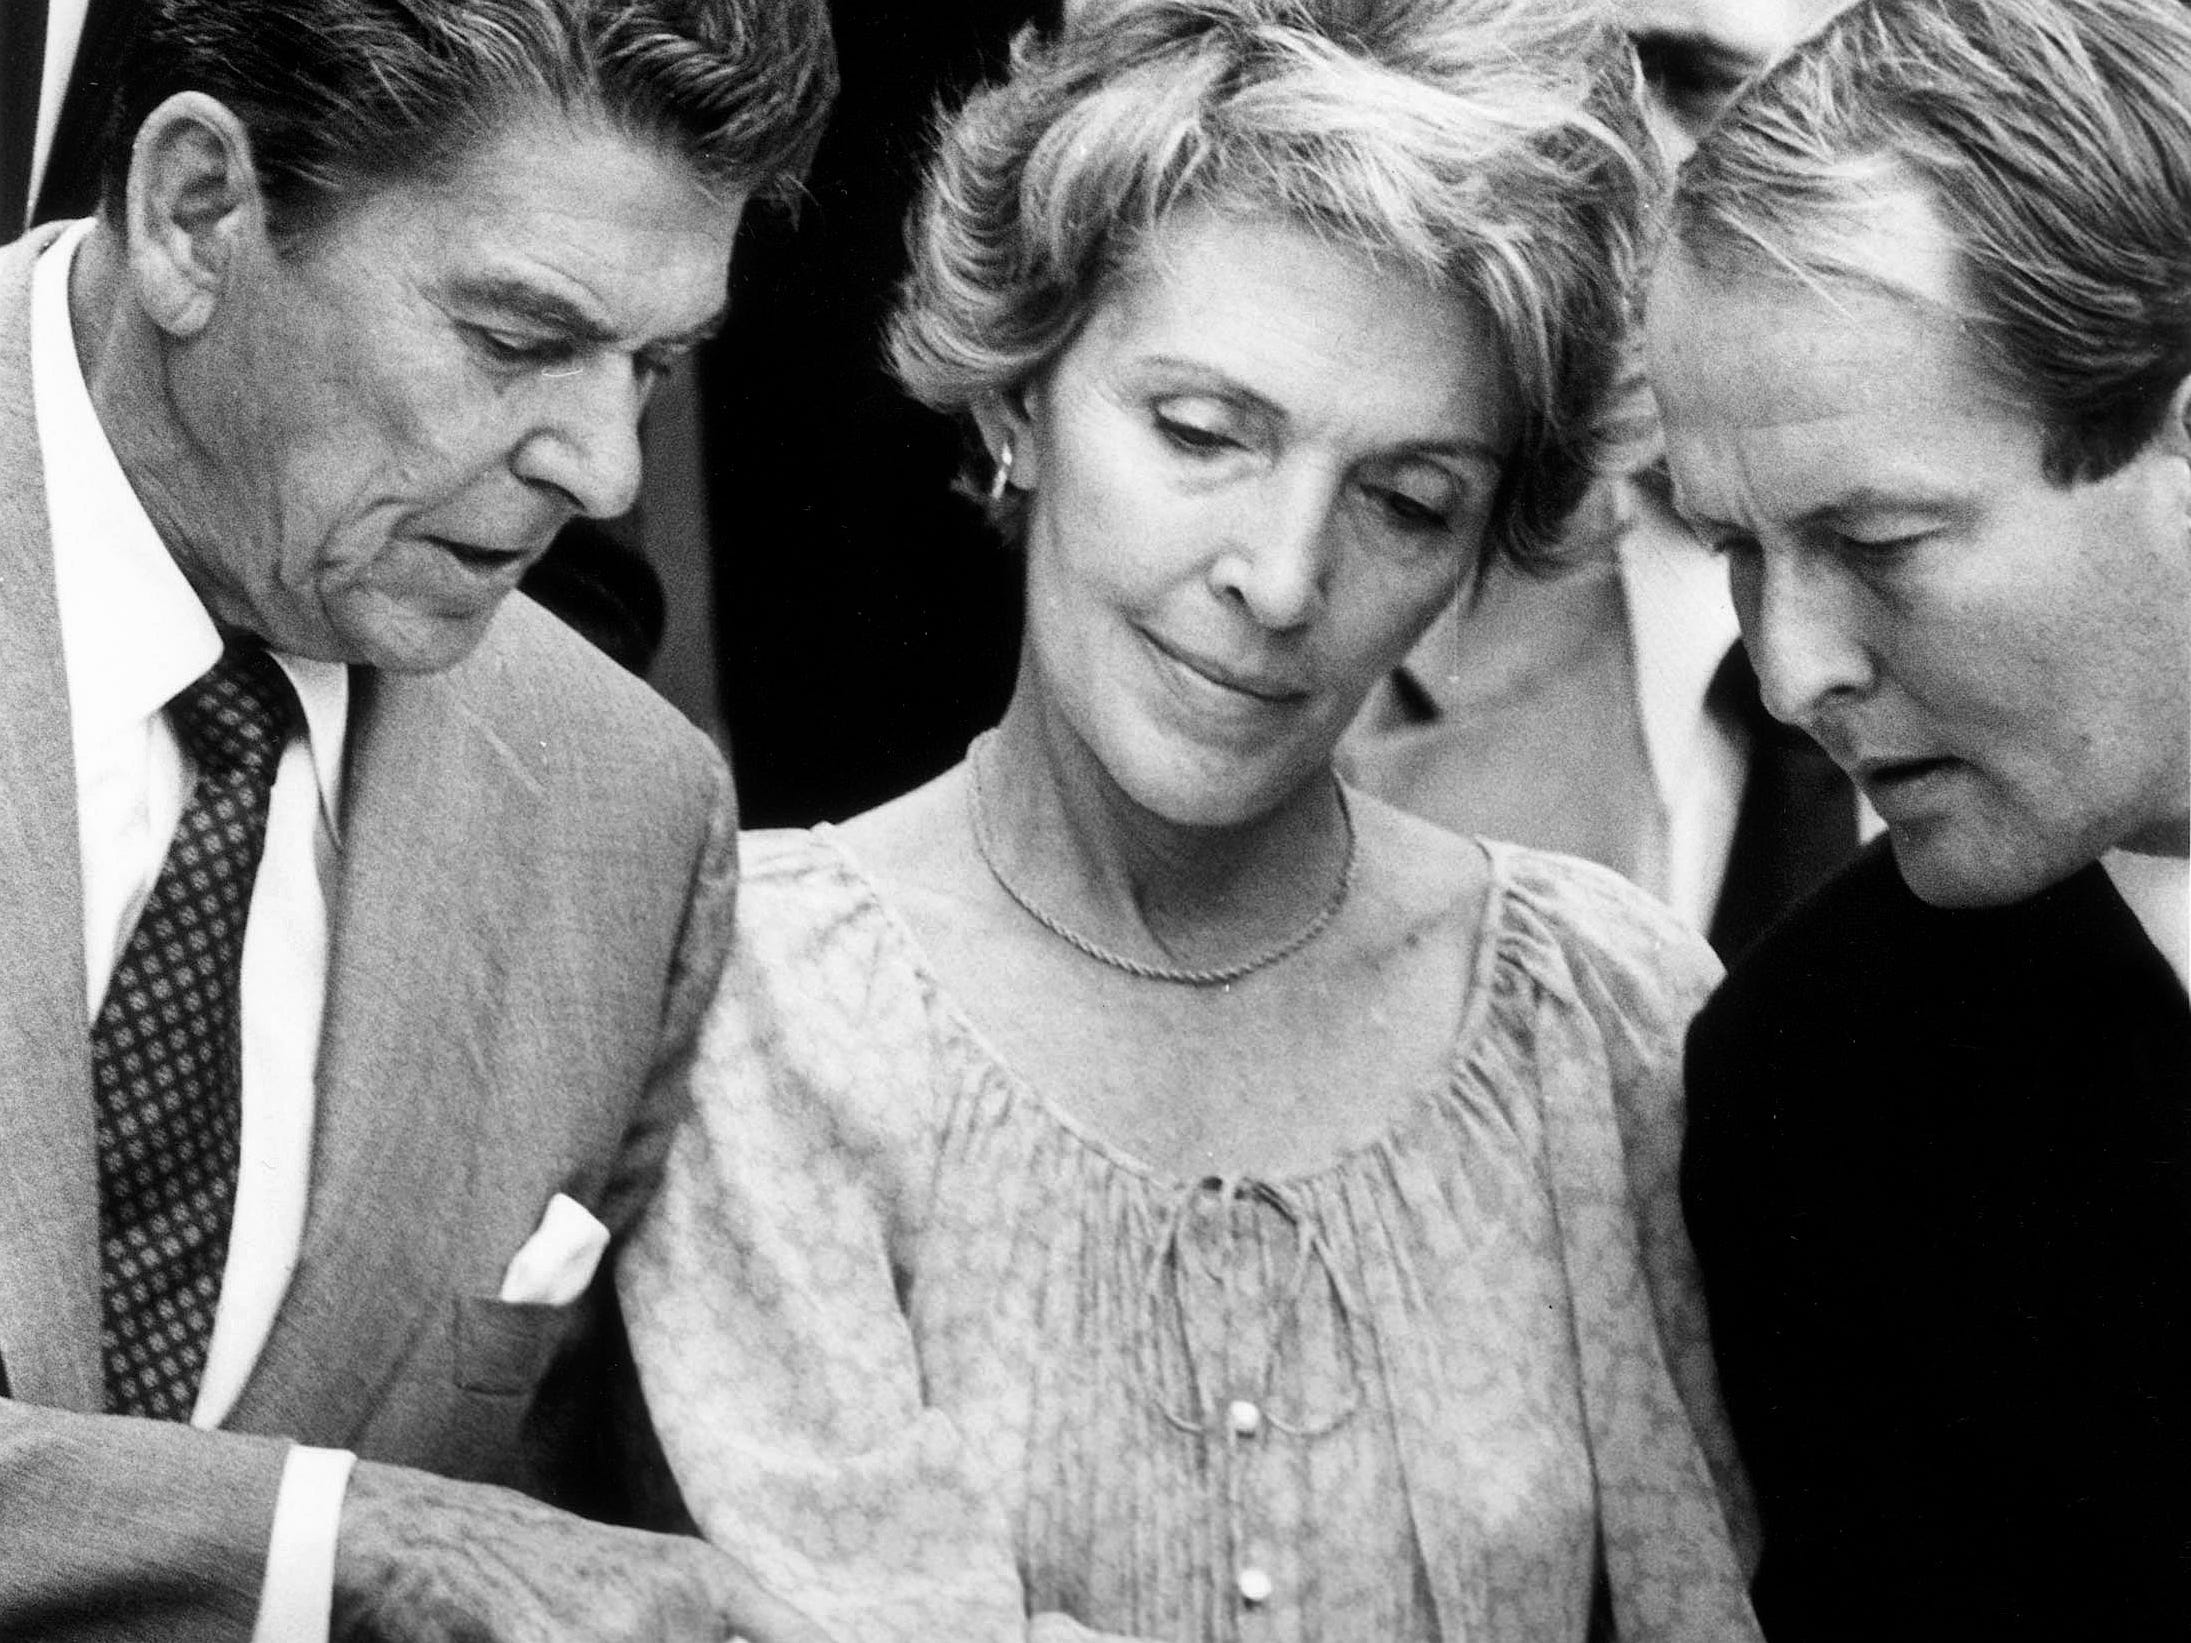 Ronald Reagan, Nancy Reagan, and Gov. Lamar Alexander confer during Reagan's campaign appearance Sept. 21, 1980, in Knoxville.